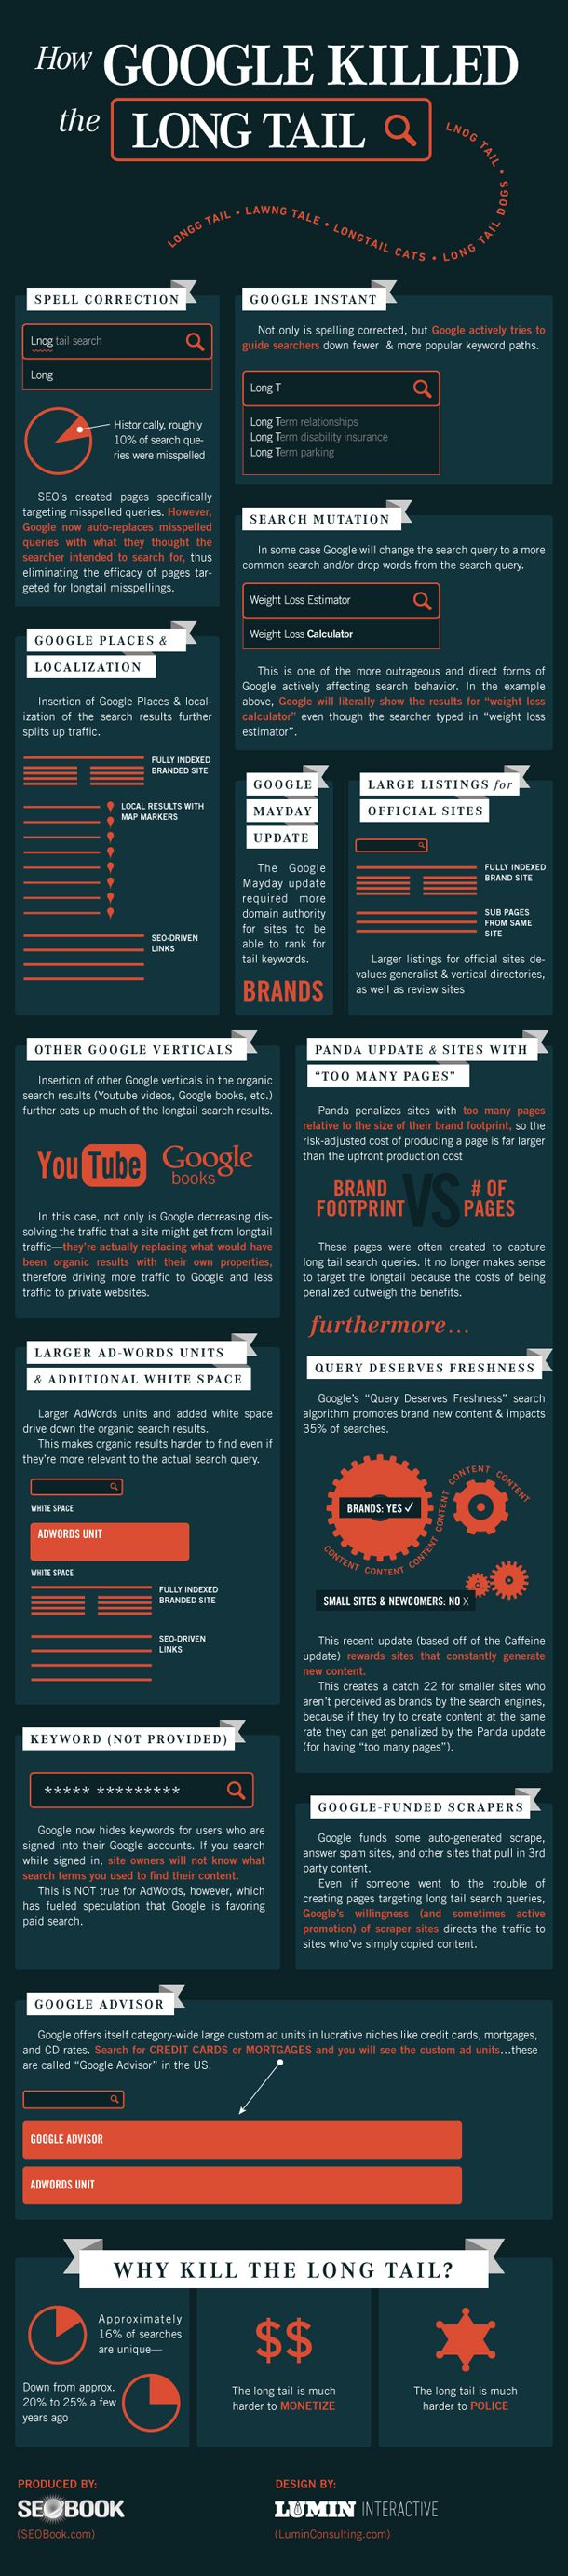 SEO: How Google Killed The Long Tail [Infographic] - Some really good stuff in here.